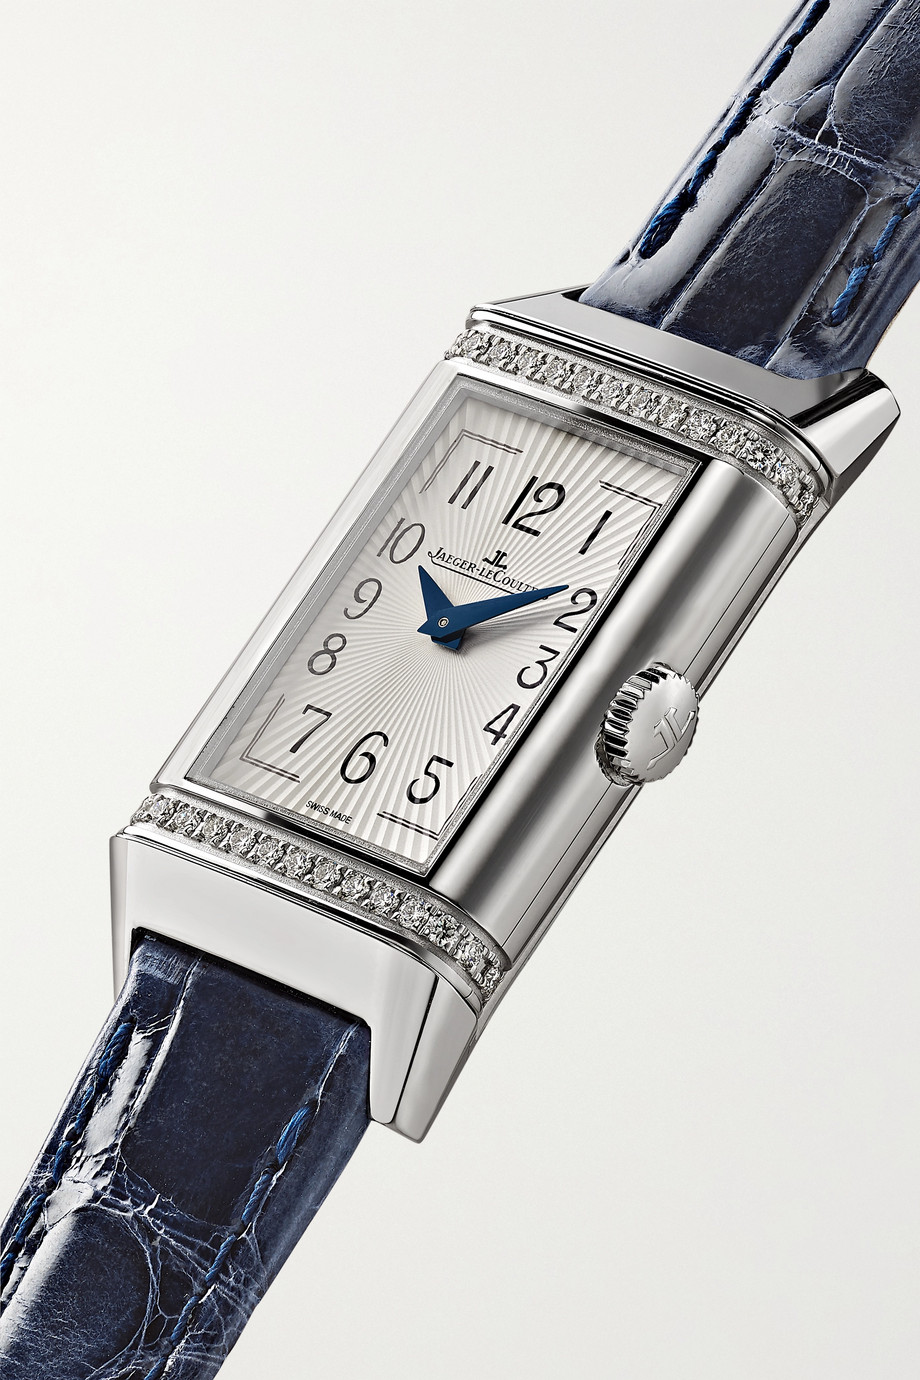 Jaeger-LeCoultre Reverso One Duetto 20mm stainless steel, diamond and alligator watch